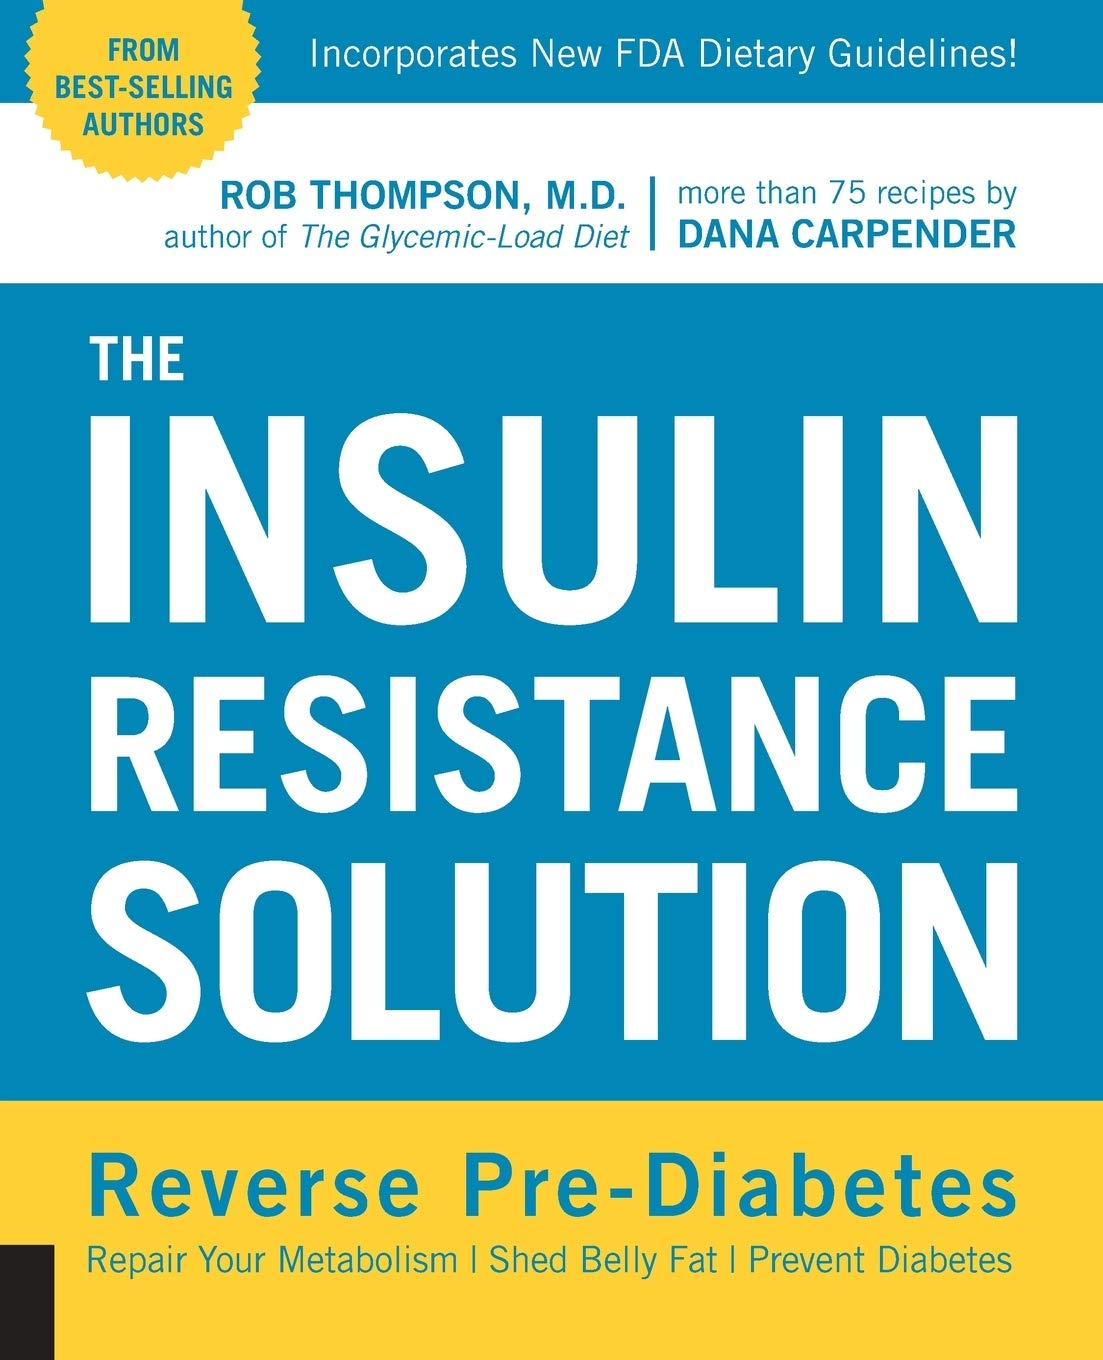 The Insulin Resistance Solution: Reverse Pre-Diabetes, Repair Your Metabolism, Shed Belly Fat, and Prevent Diabetes - with more than 75 recipes by Dana Carpender 1